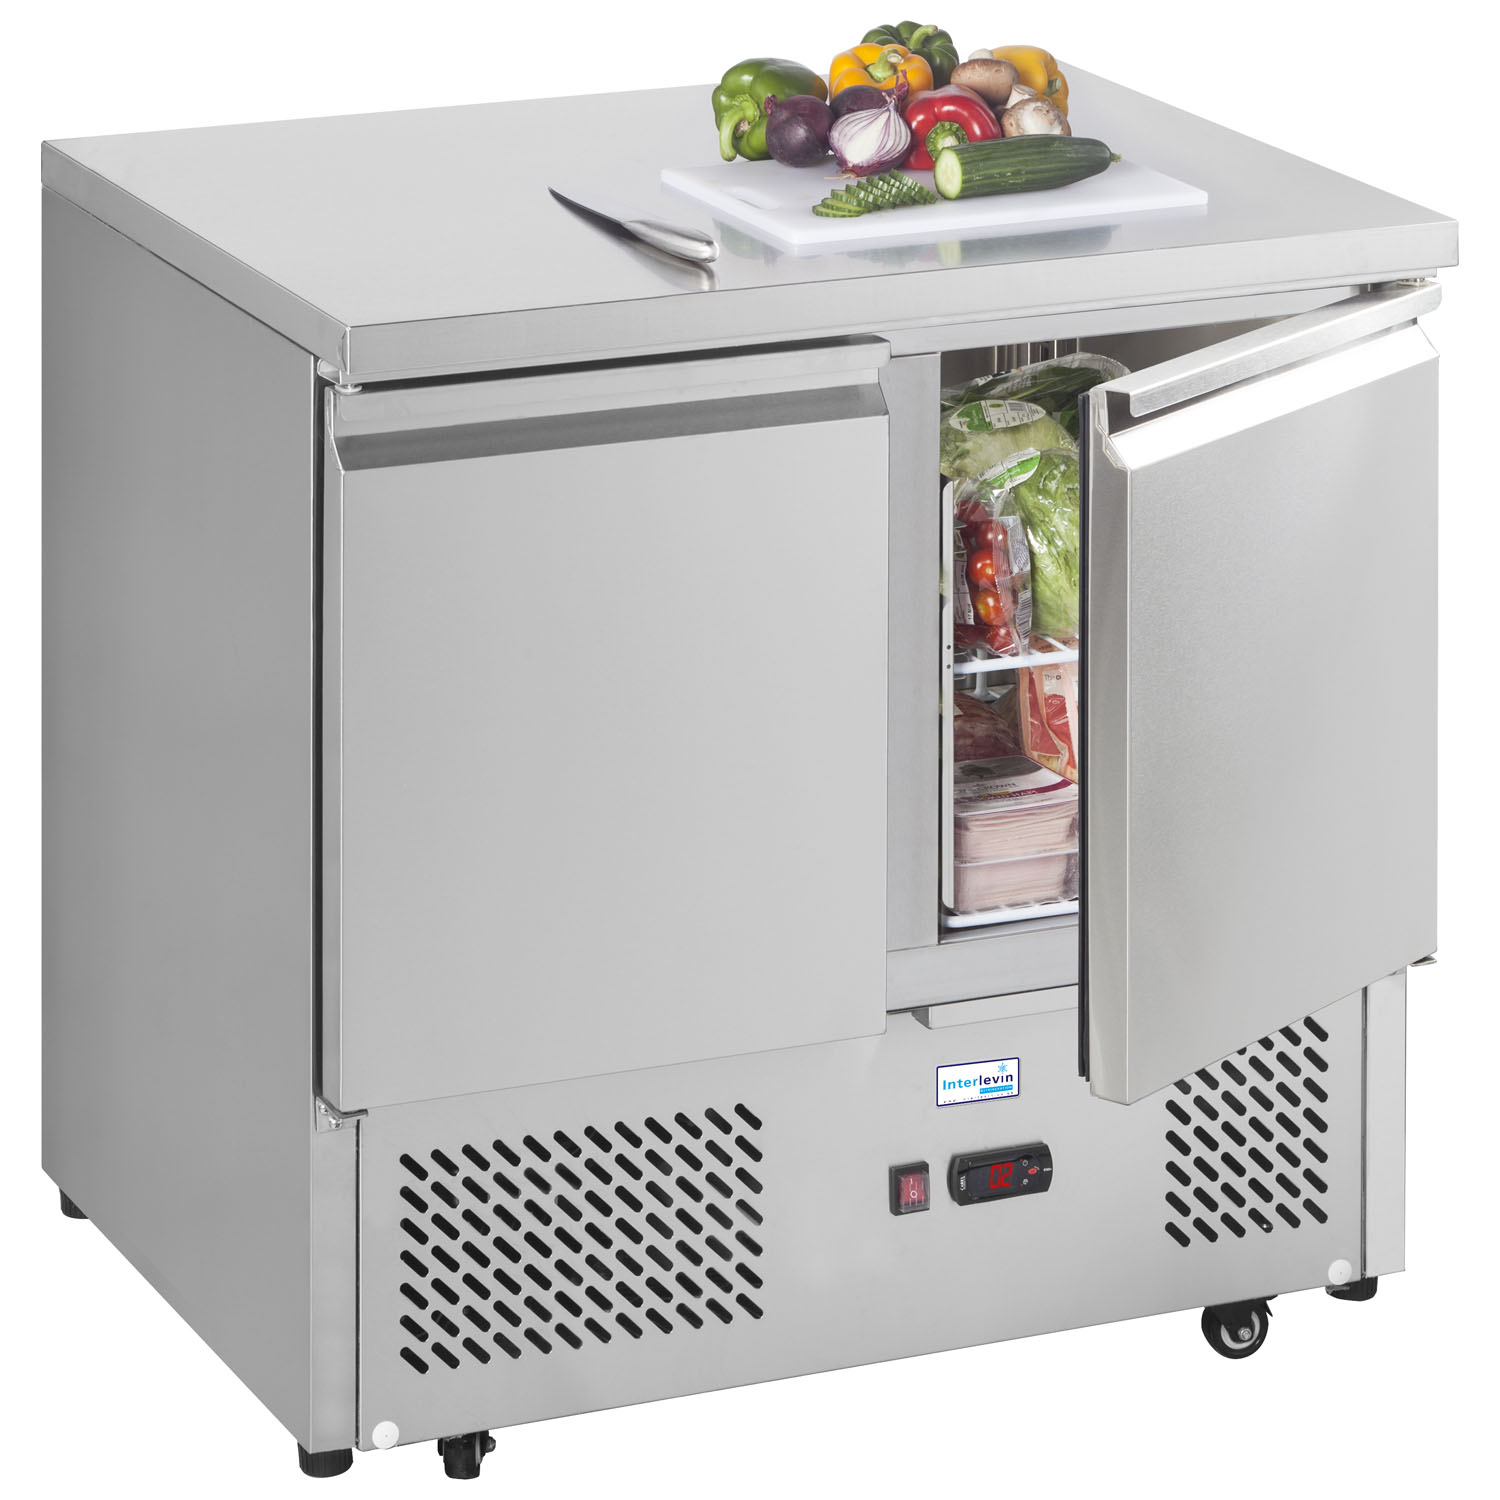 An image of Interlevin ESL900 Refrigerated Prep Counter